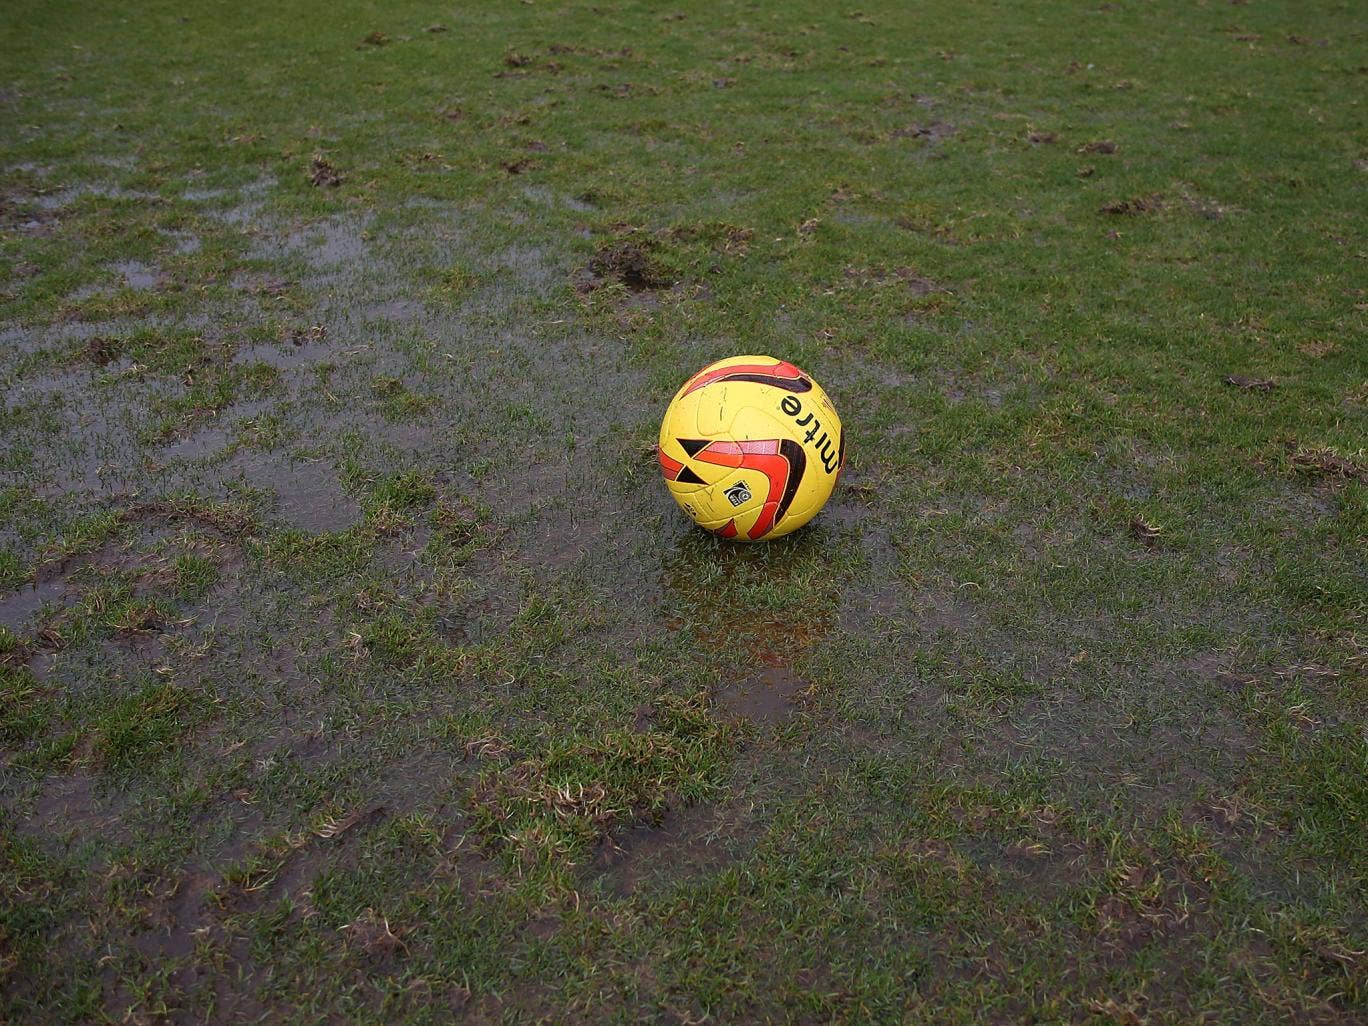 The match at Sixfields between Coventry and Bradford has been called off